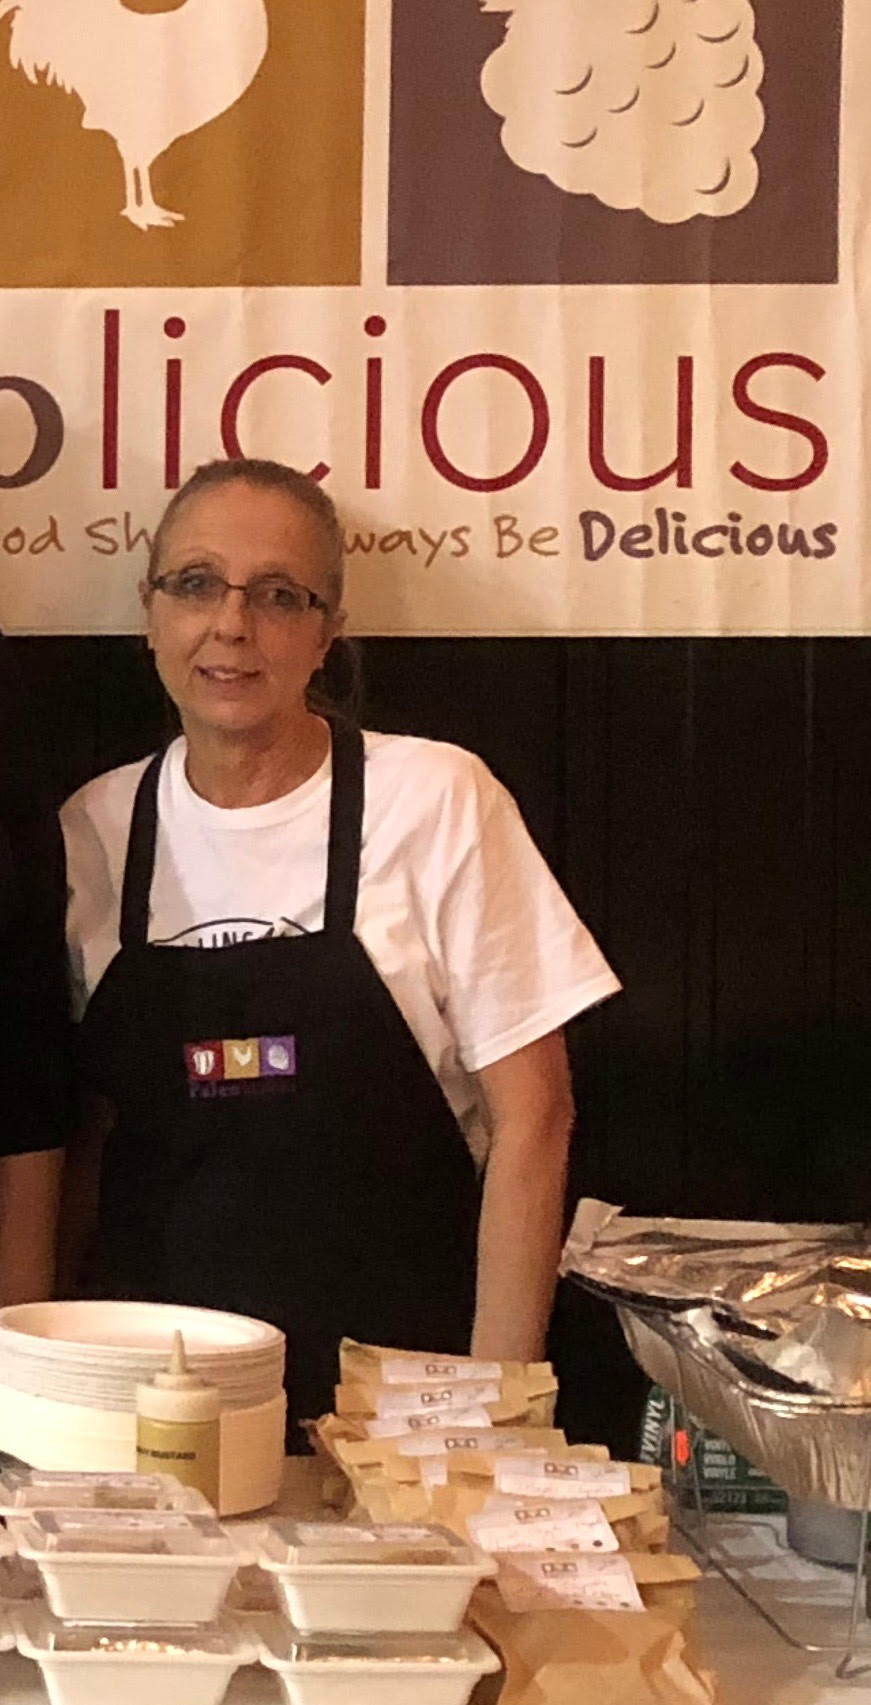 Terry Campbell - Café Manager at the Scripps Center. Terry came to Paleolicious as a 10 year veteran and District Trainer from Starbucks. Highly treasured by us at Paleolicious, she always has a smile, a creative recipe idea and a great story about Charlie, Raven or Sugar.